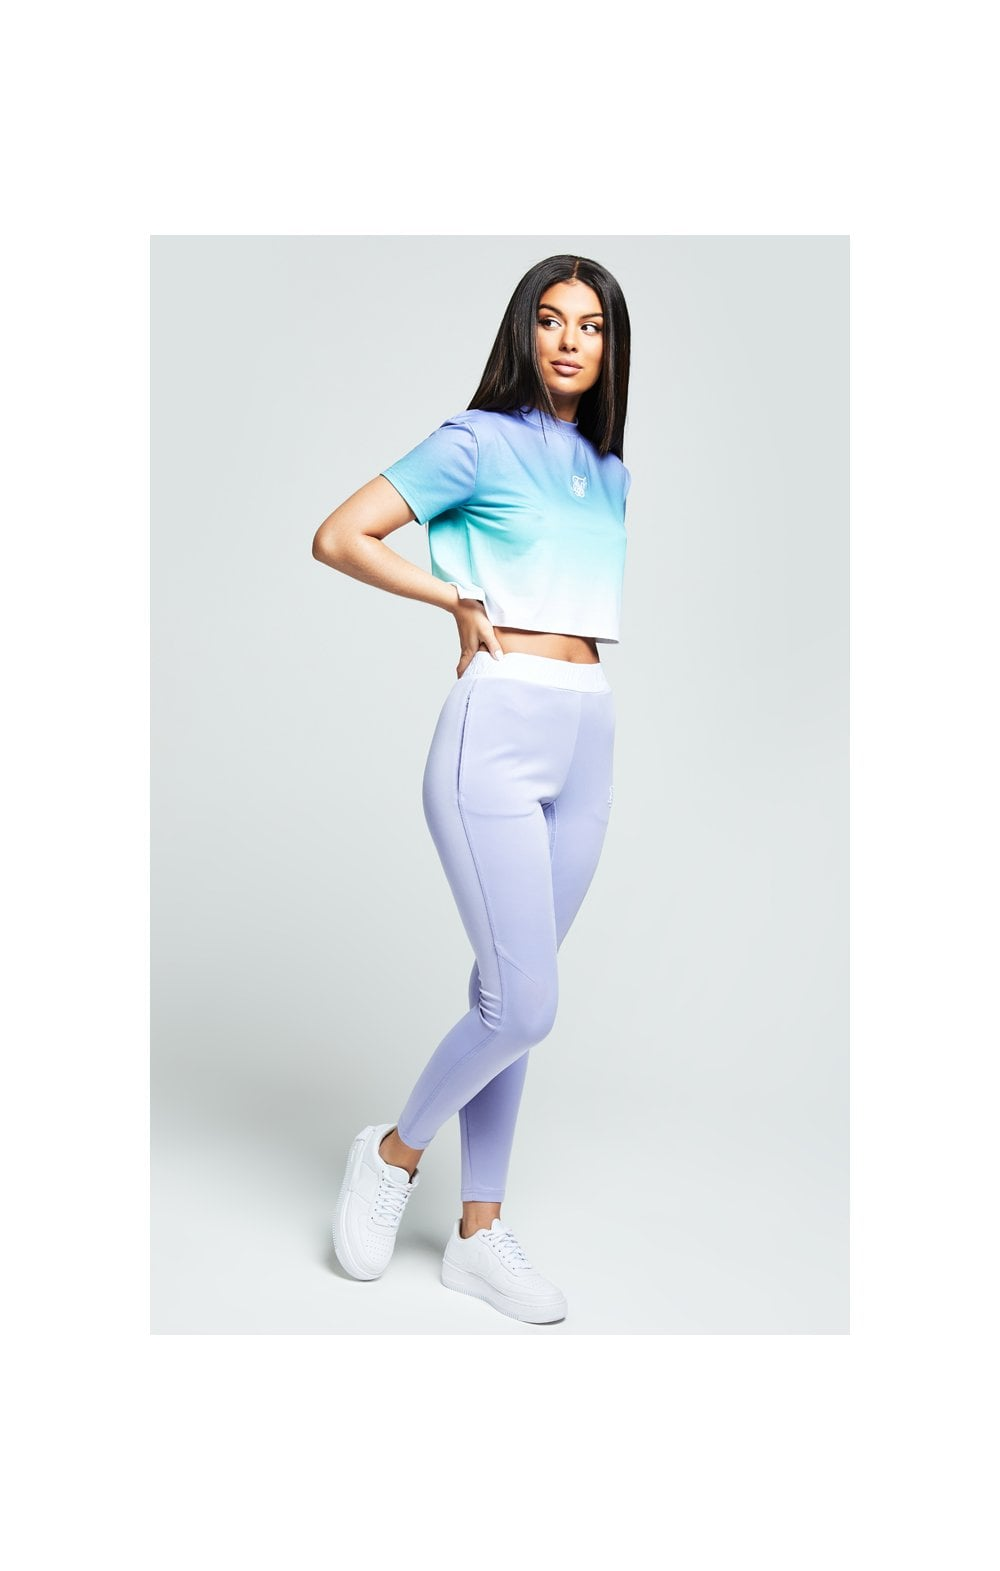 Load image into Gallery viewer, SikSilk Lilac Haze Tee - Lilac, Turquoise & White (1)